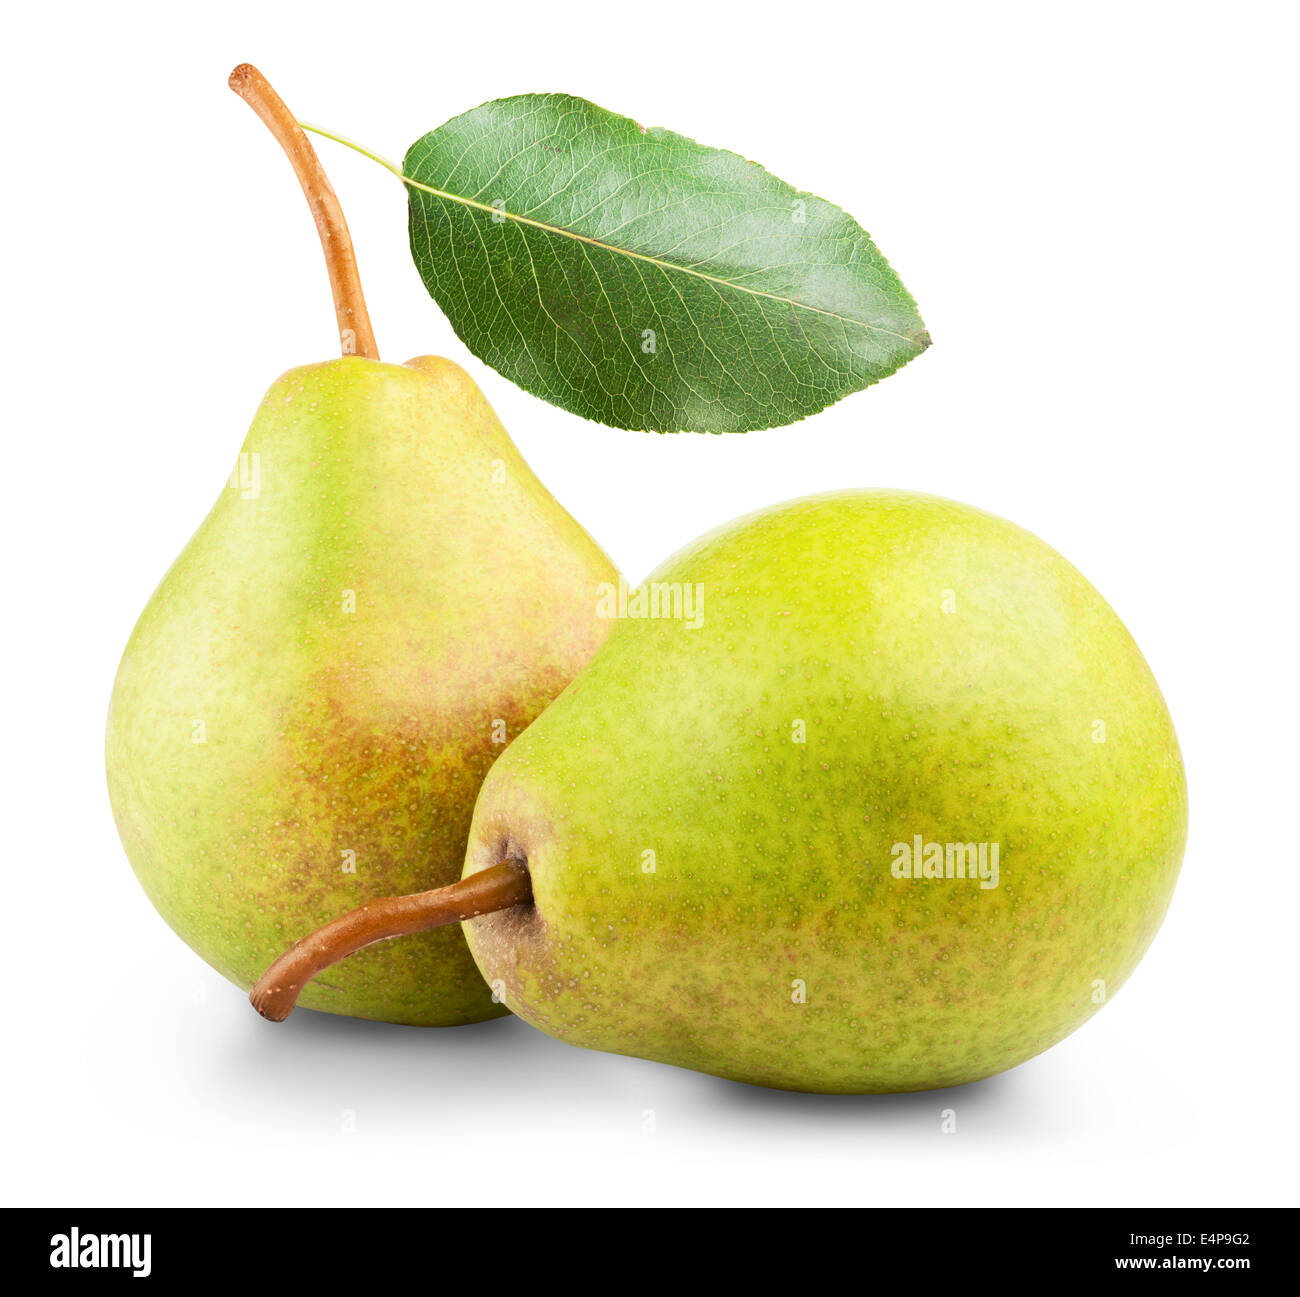 ripe pears isolated on white background - Stock Image